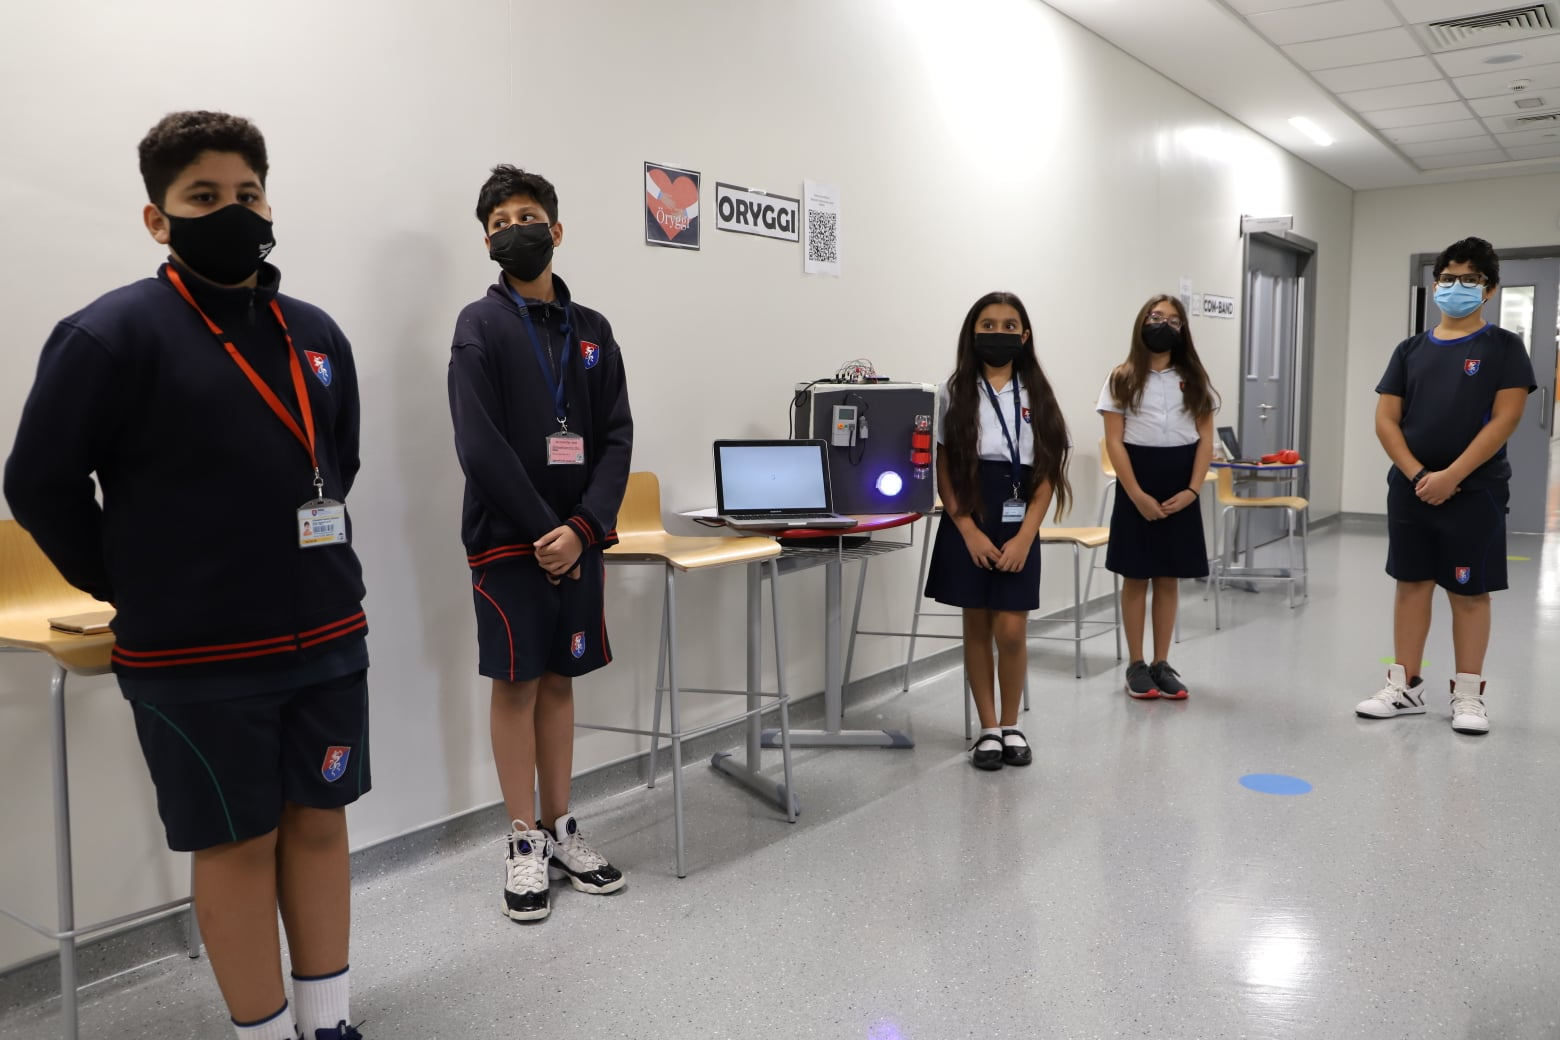 Students from GEMS Education create disinfecting solutions to make the world safer